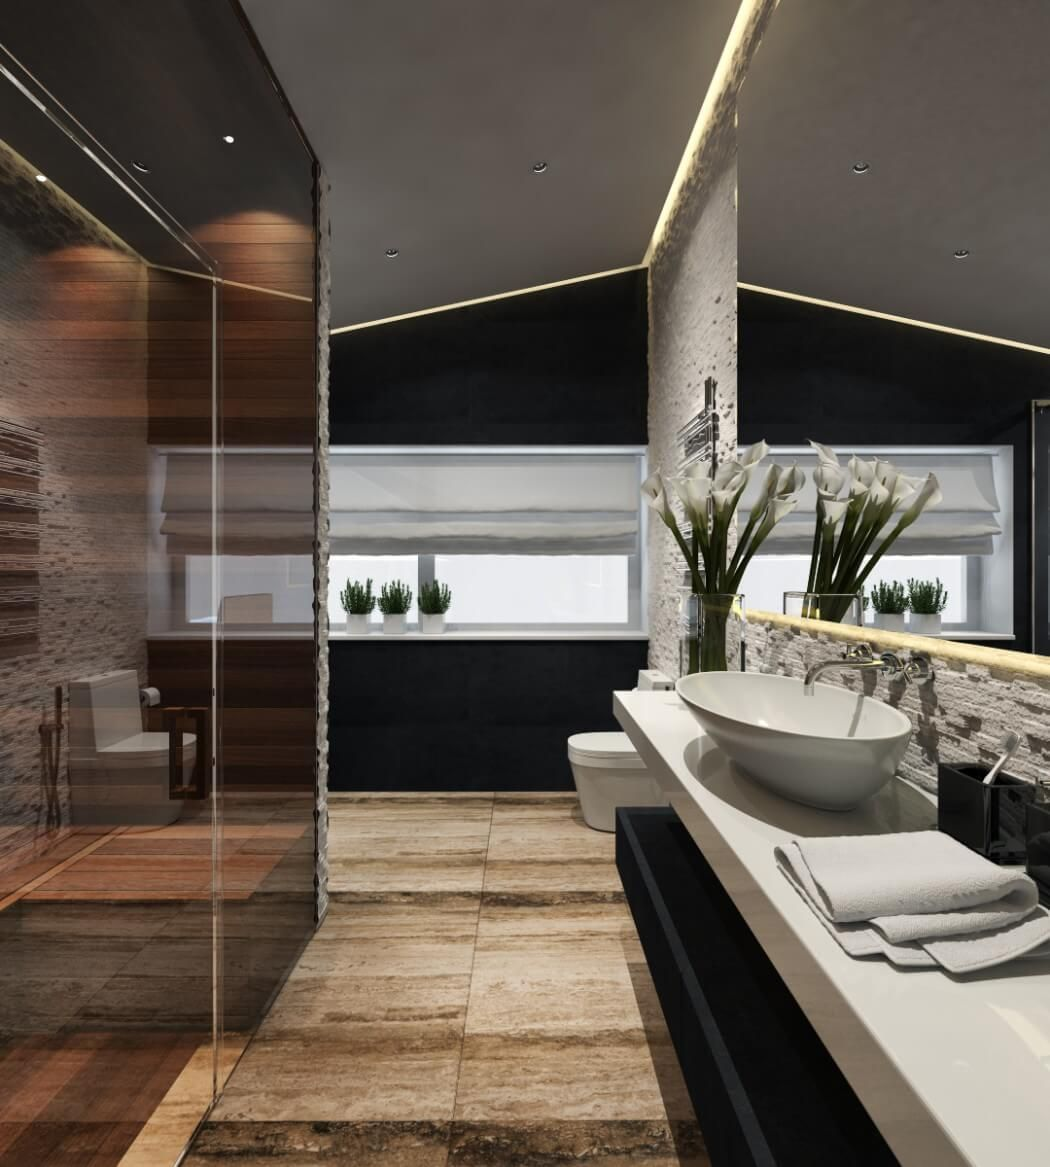 House in Moscow by Shamsudin Kerimov